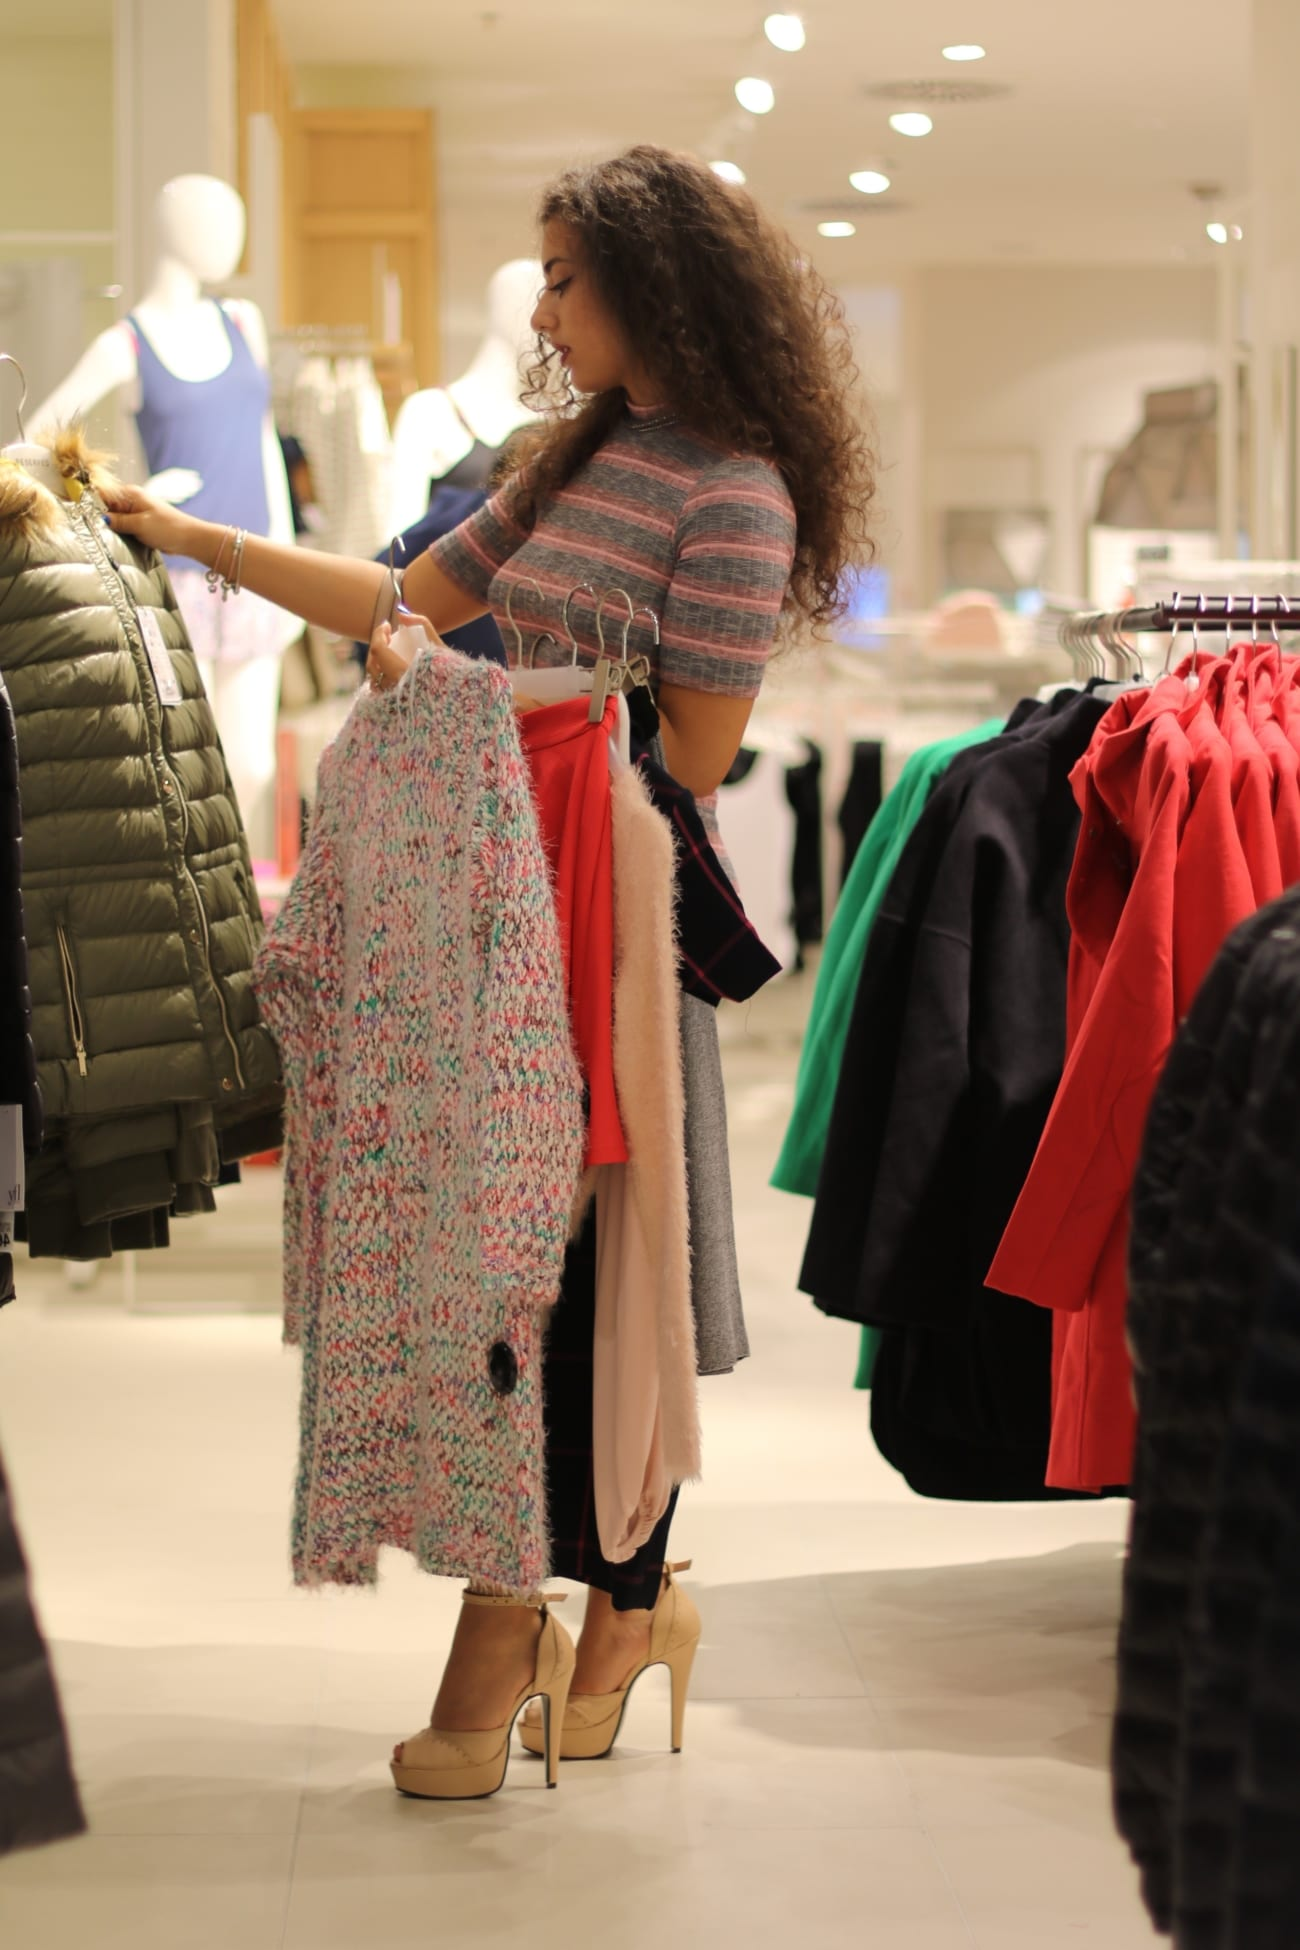 reserved-timis-roxi-rose-fashion-blogger-romania-shopping-city-timisoara-concurs-back-to-office-outfit-transitional-idei-news-stiri-8